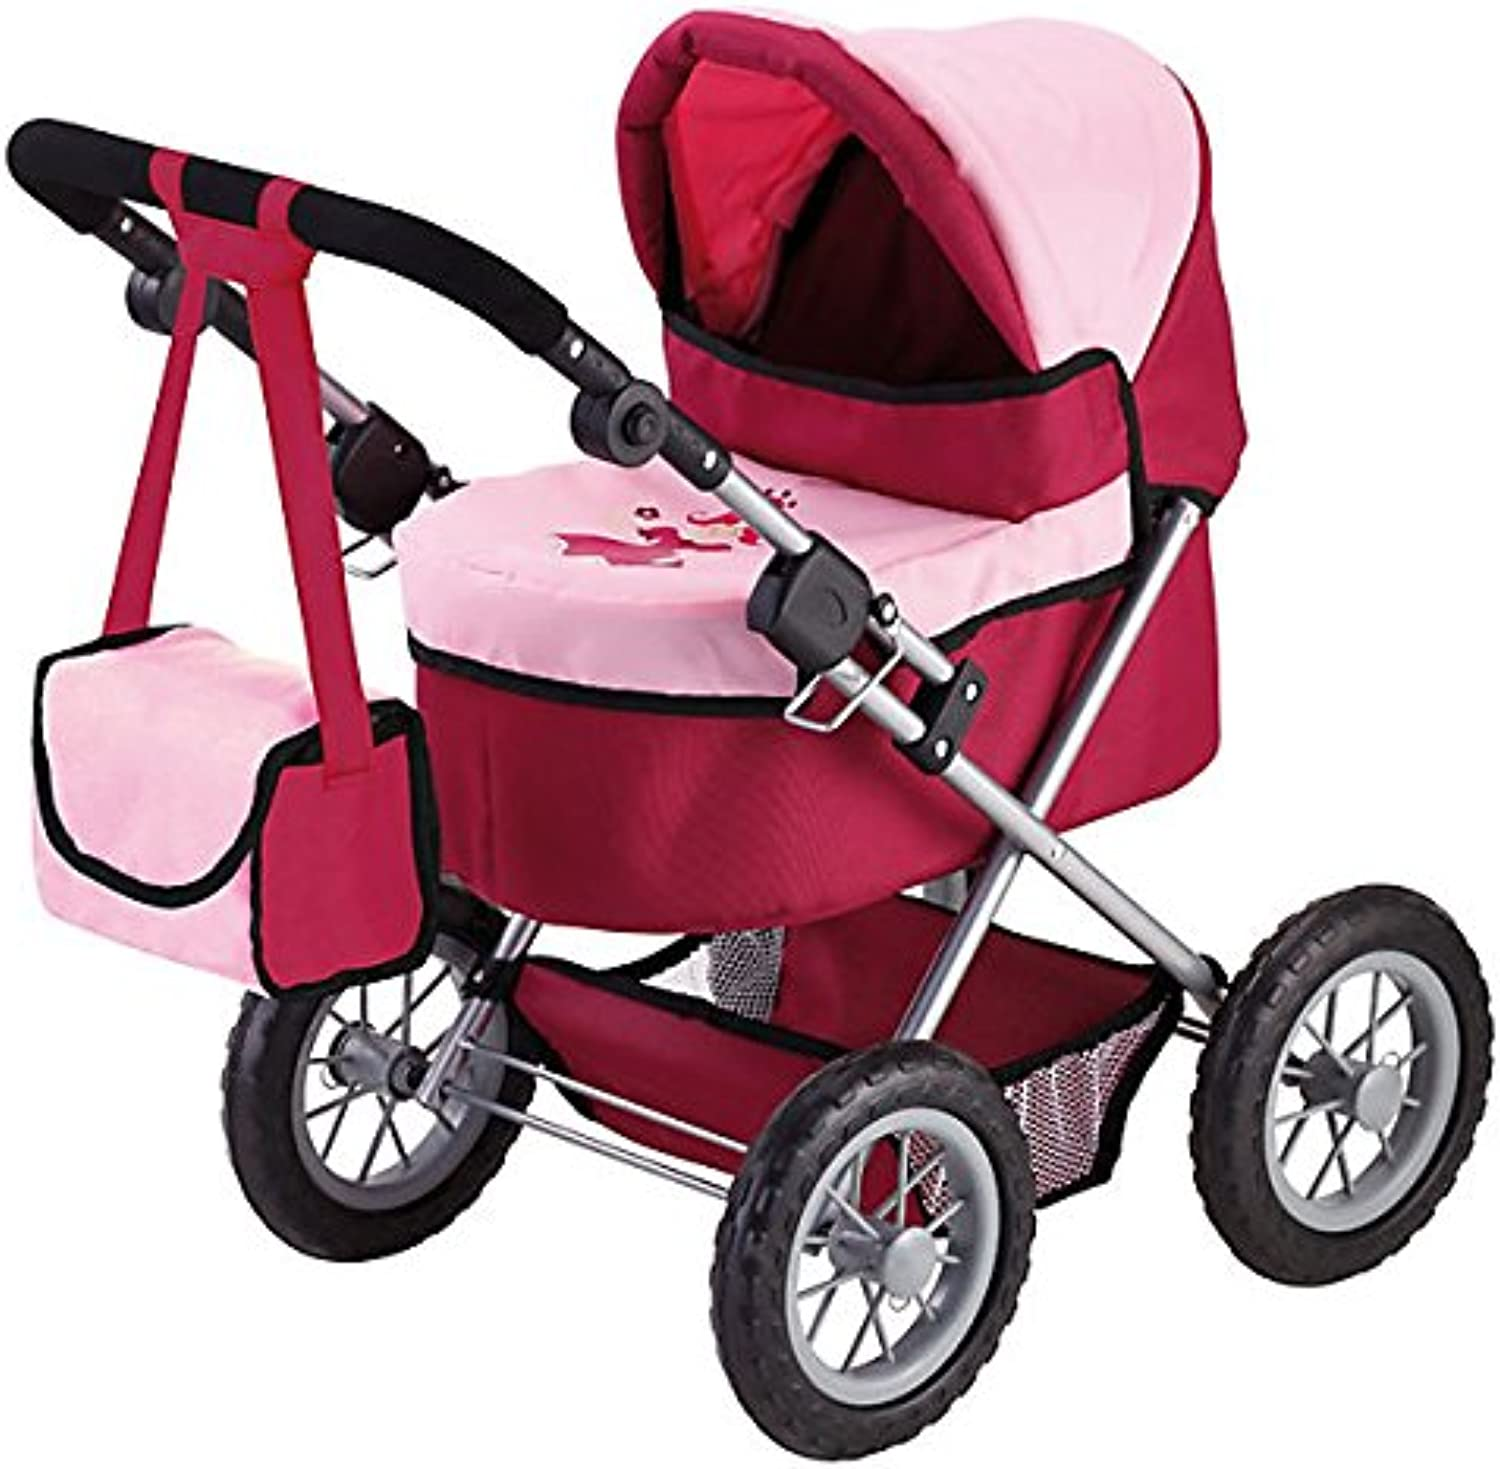 Bayer Design 13014 Trendy Doll Pram, Red and Pink